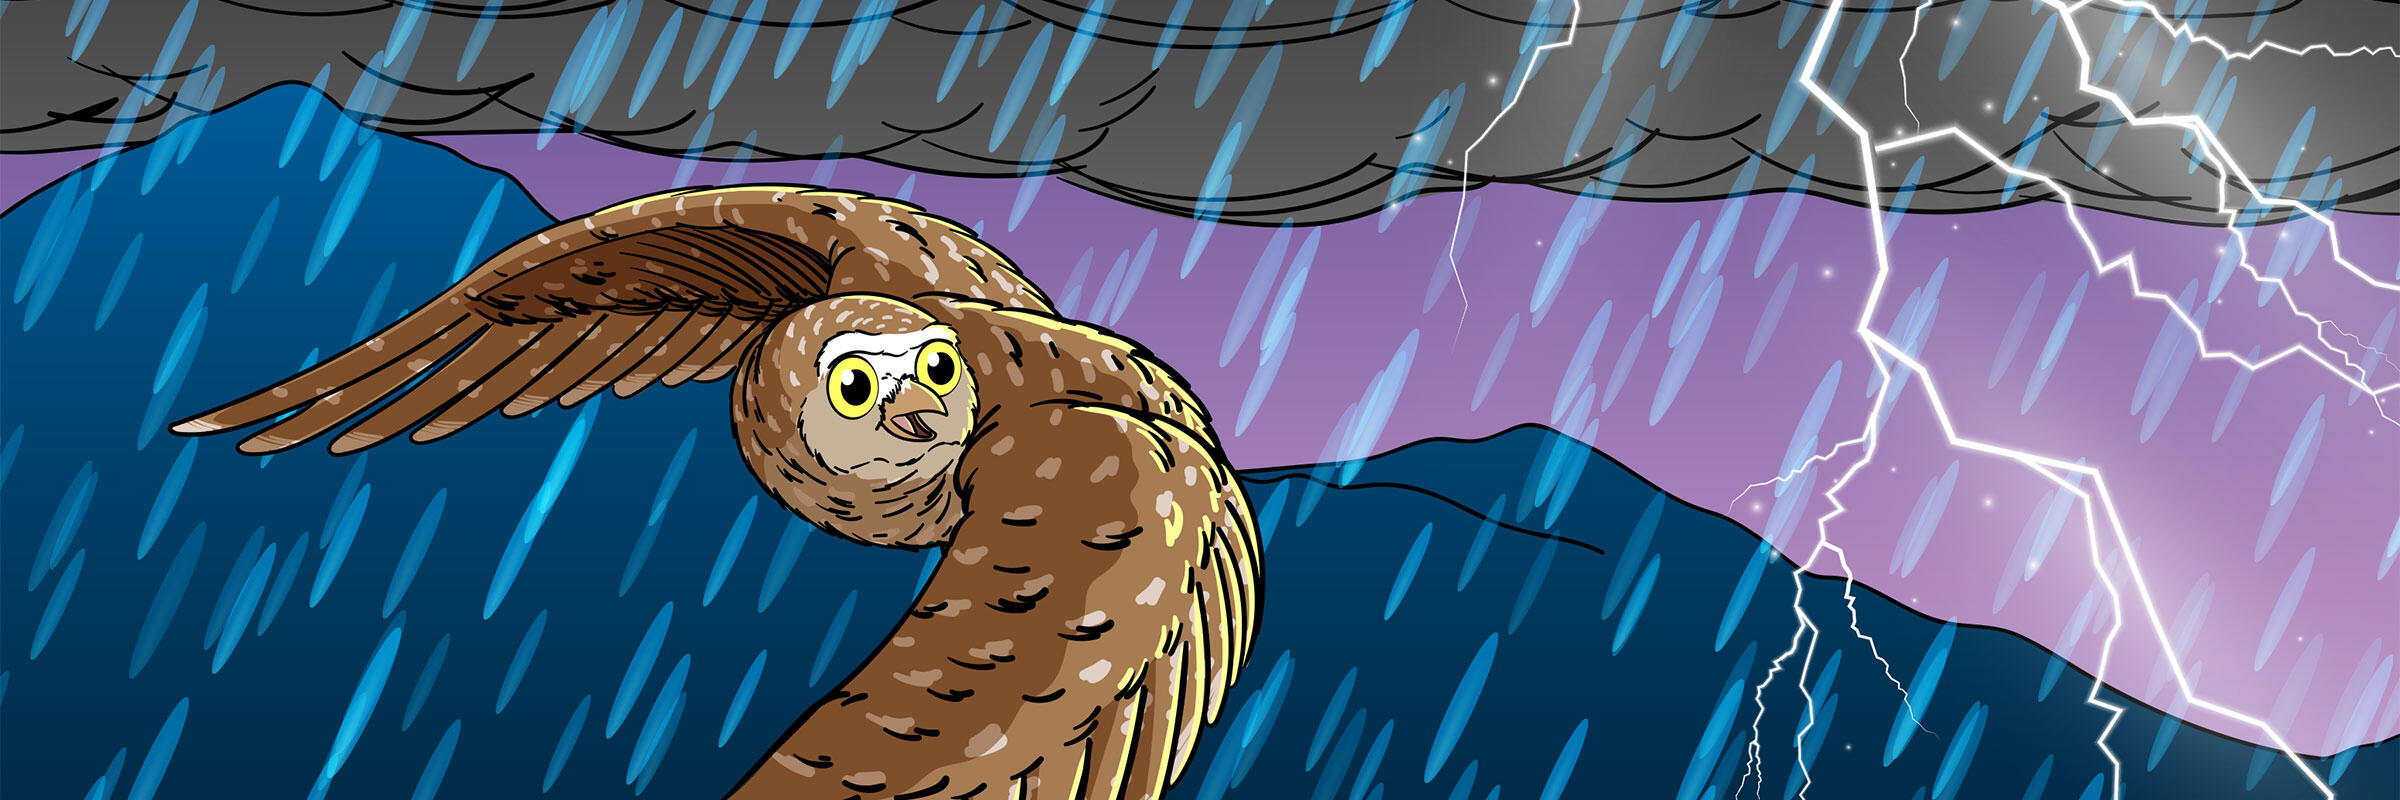 An illustration of a Burrowing Owl flying across a rainy sky with lightning.